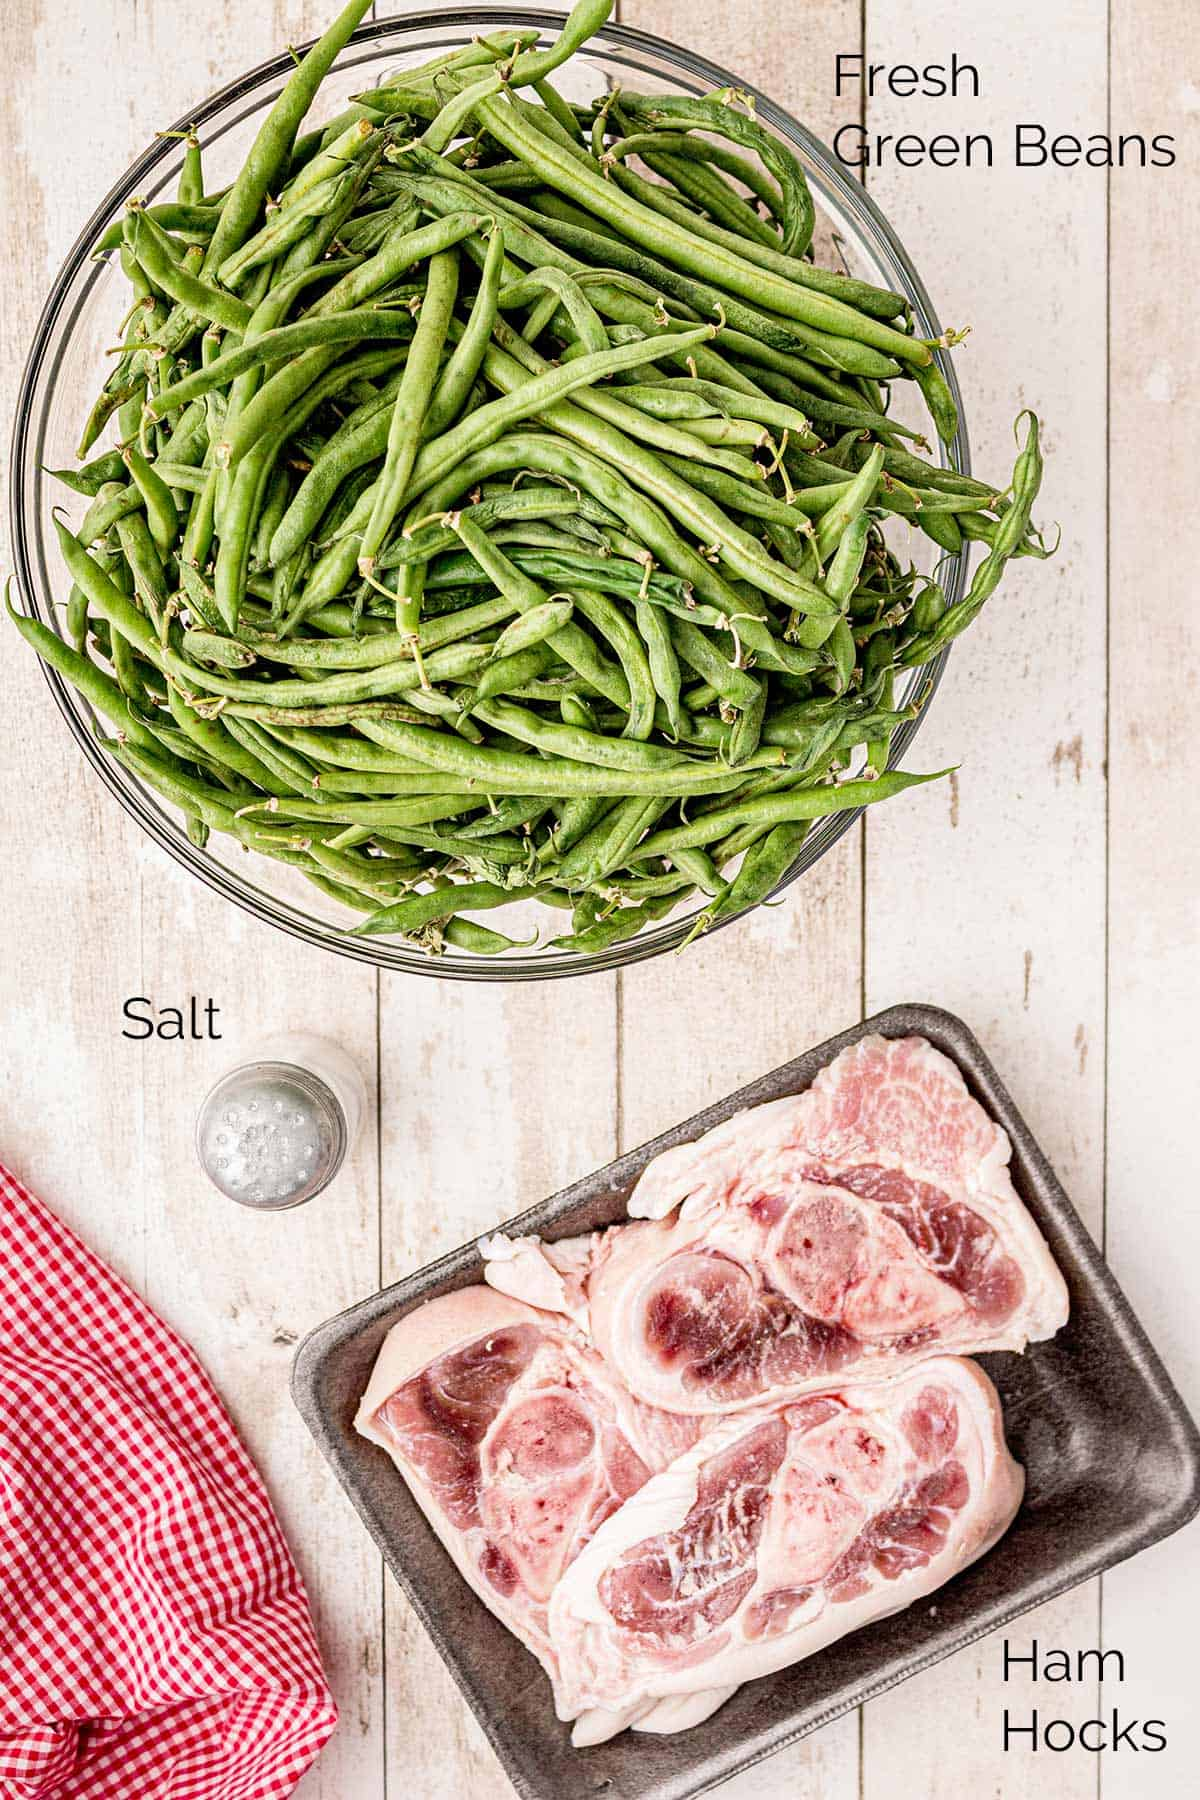 Photo of ingredients needed for the recipes: green beans, salt, ham hocks